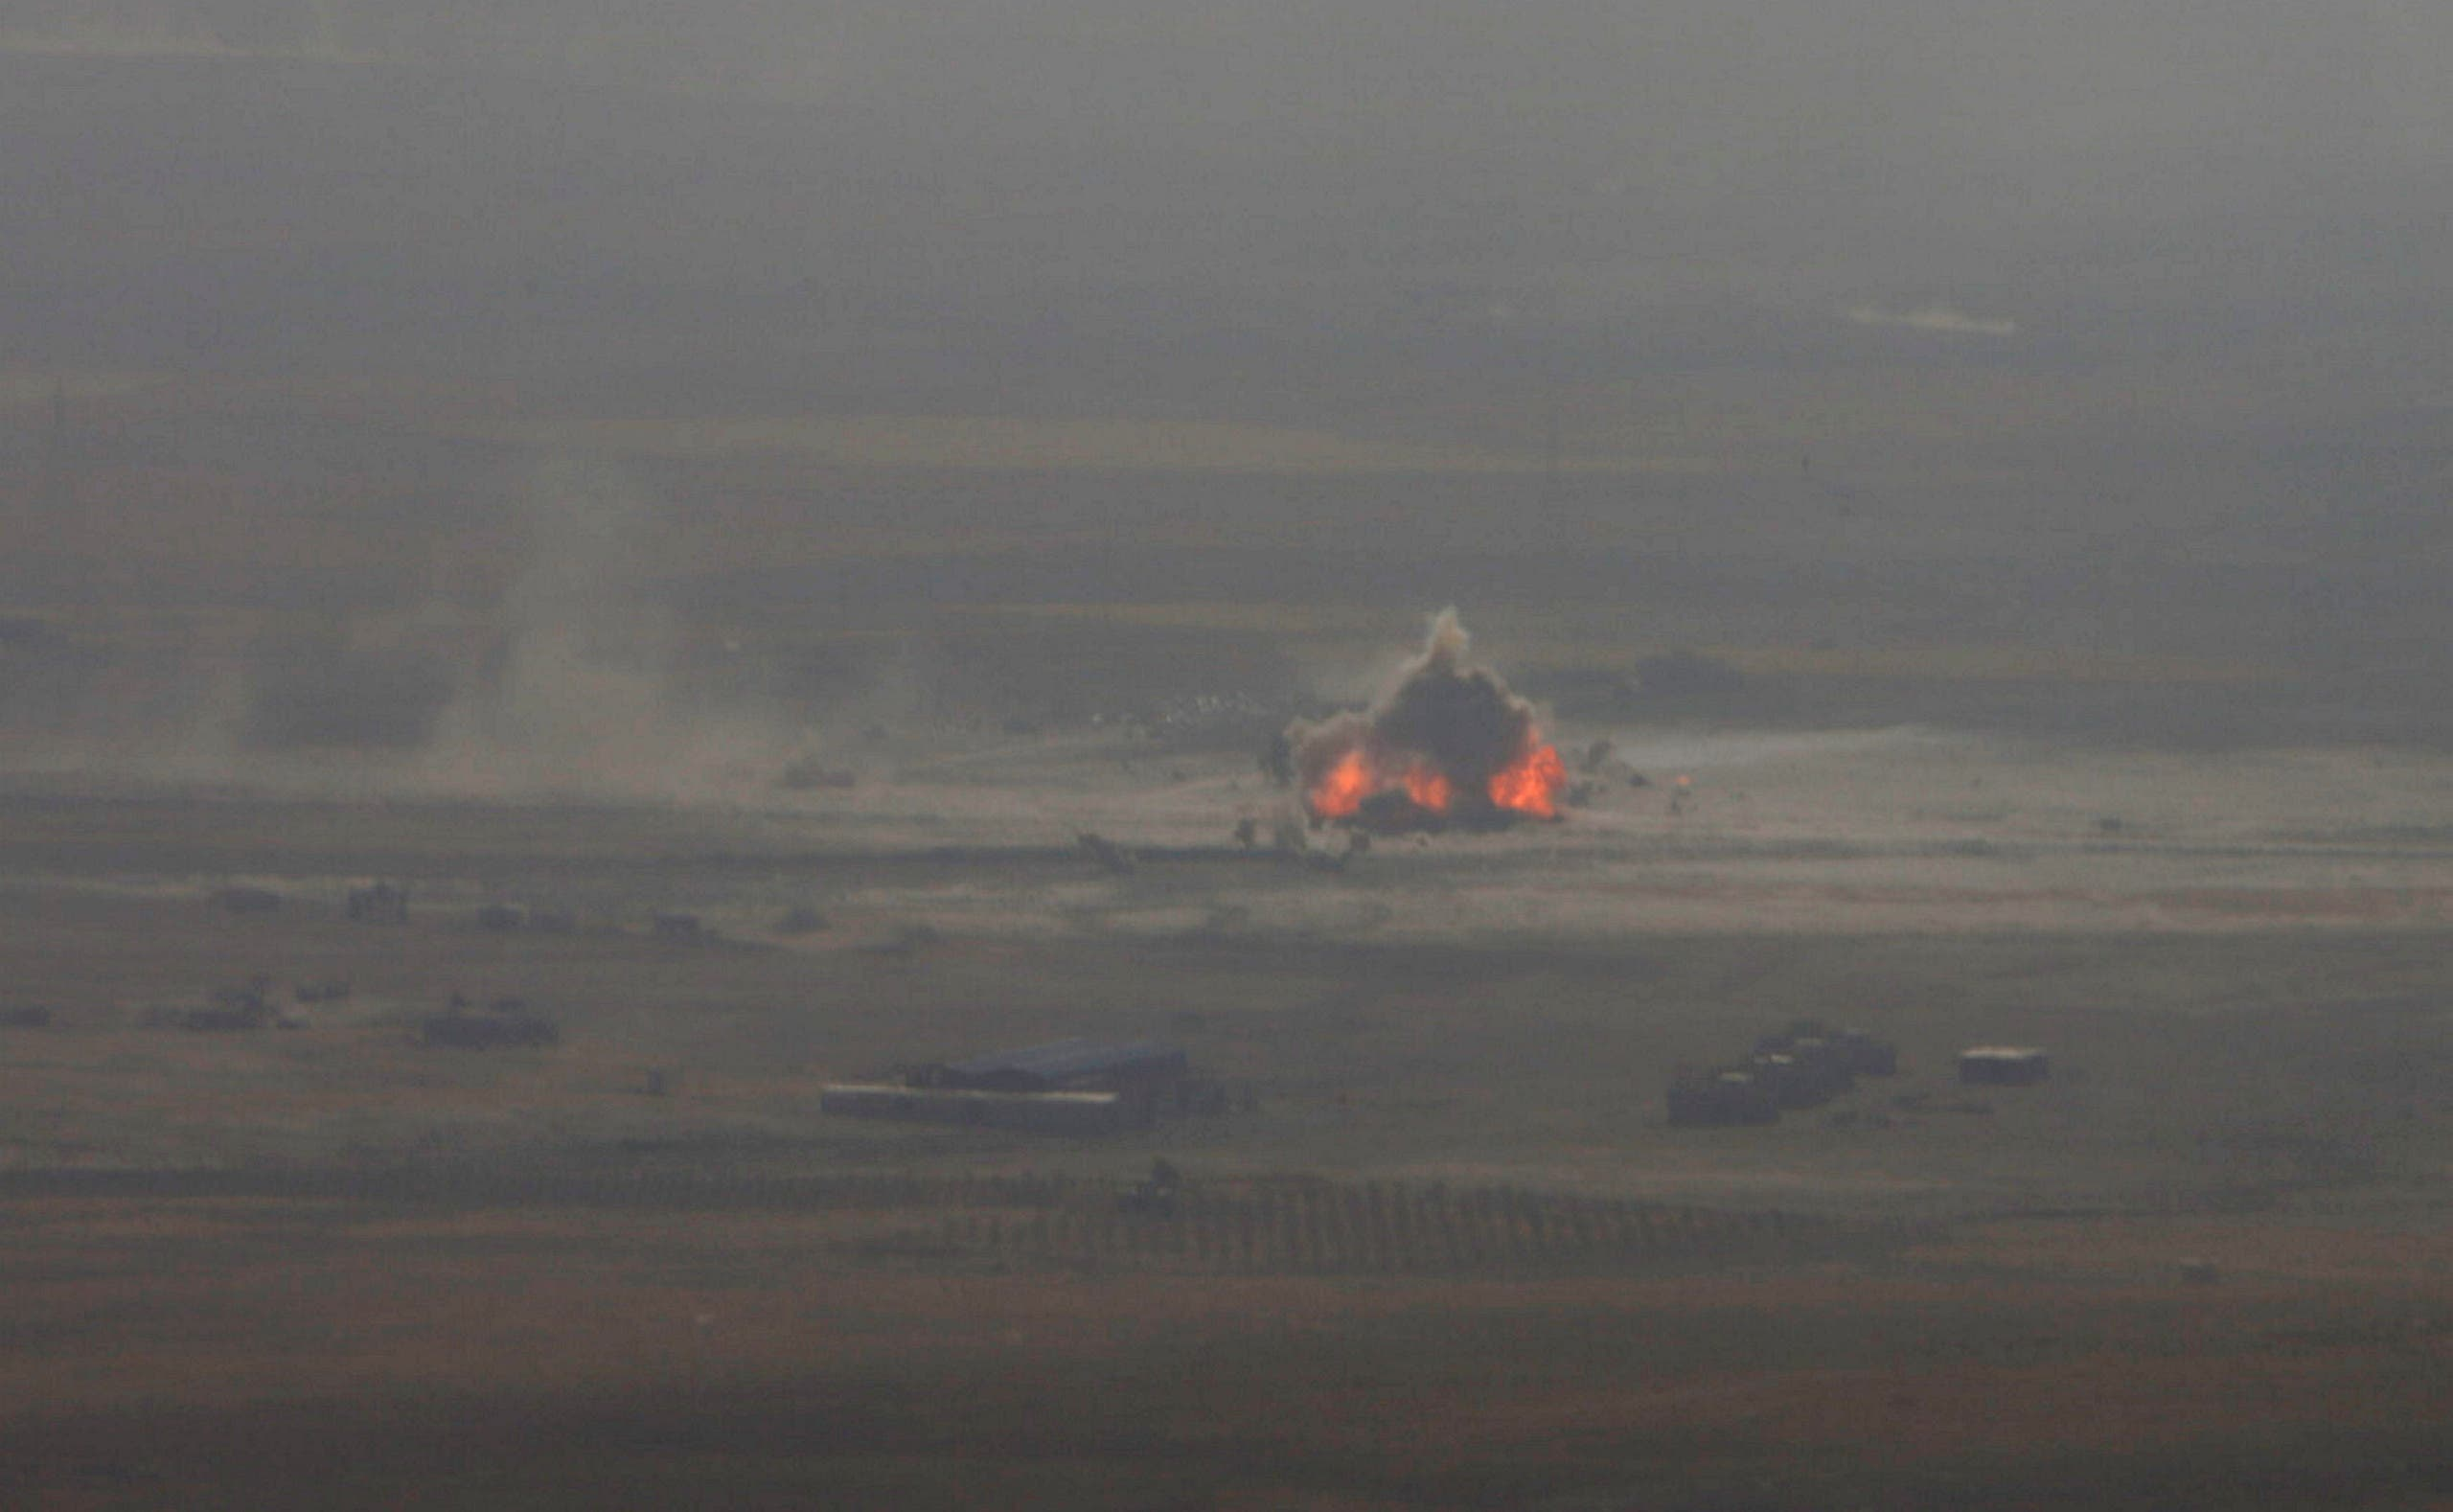 A car bomb attack is seen in the east of Mosul during clashes with ISIS militants, Iraq, October 17, 2016. (Reuters)